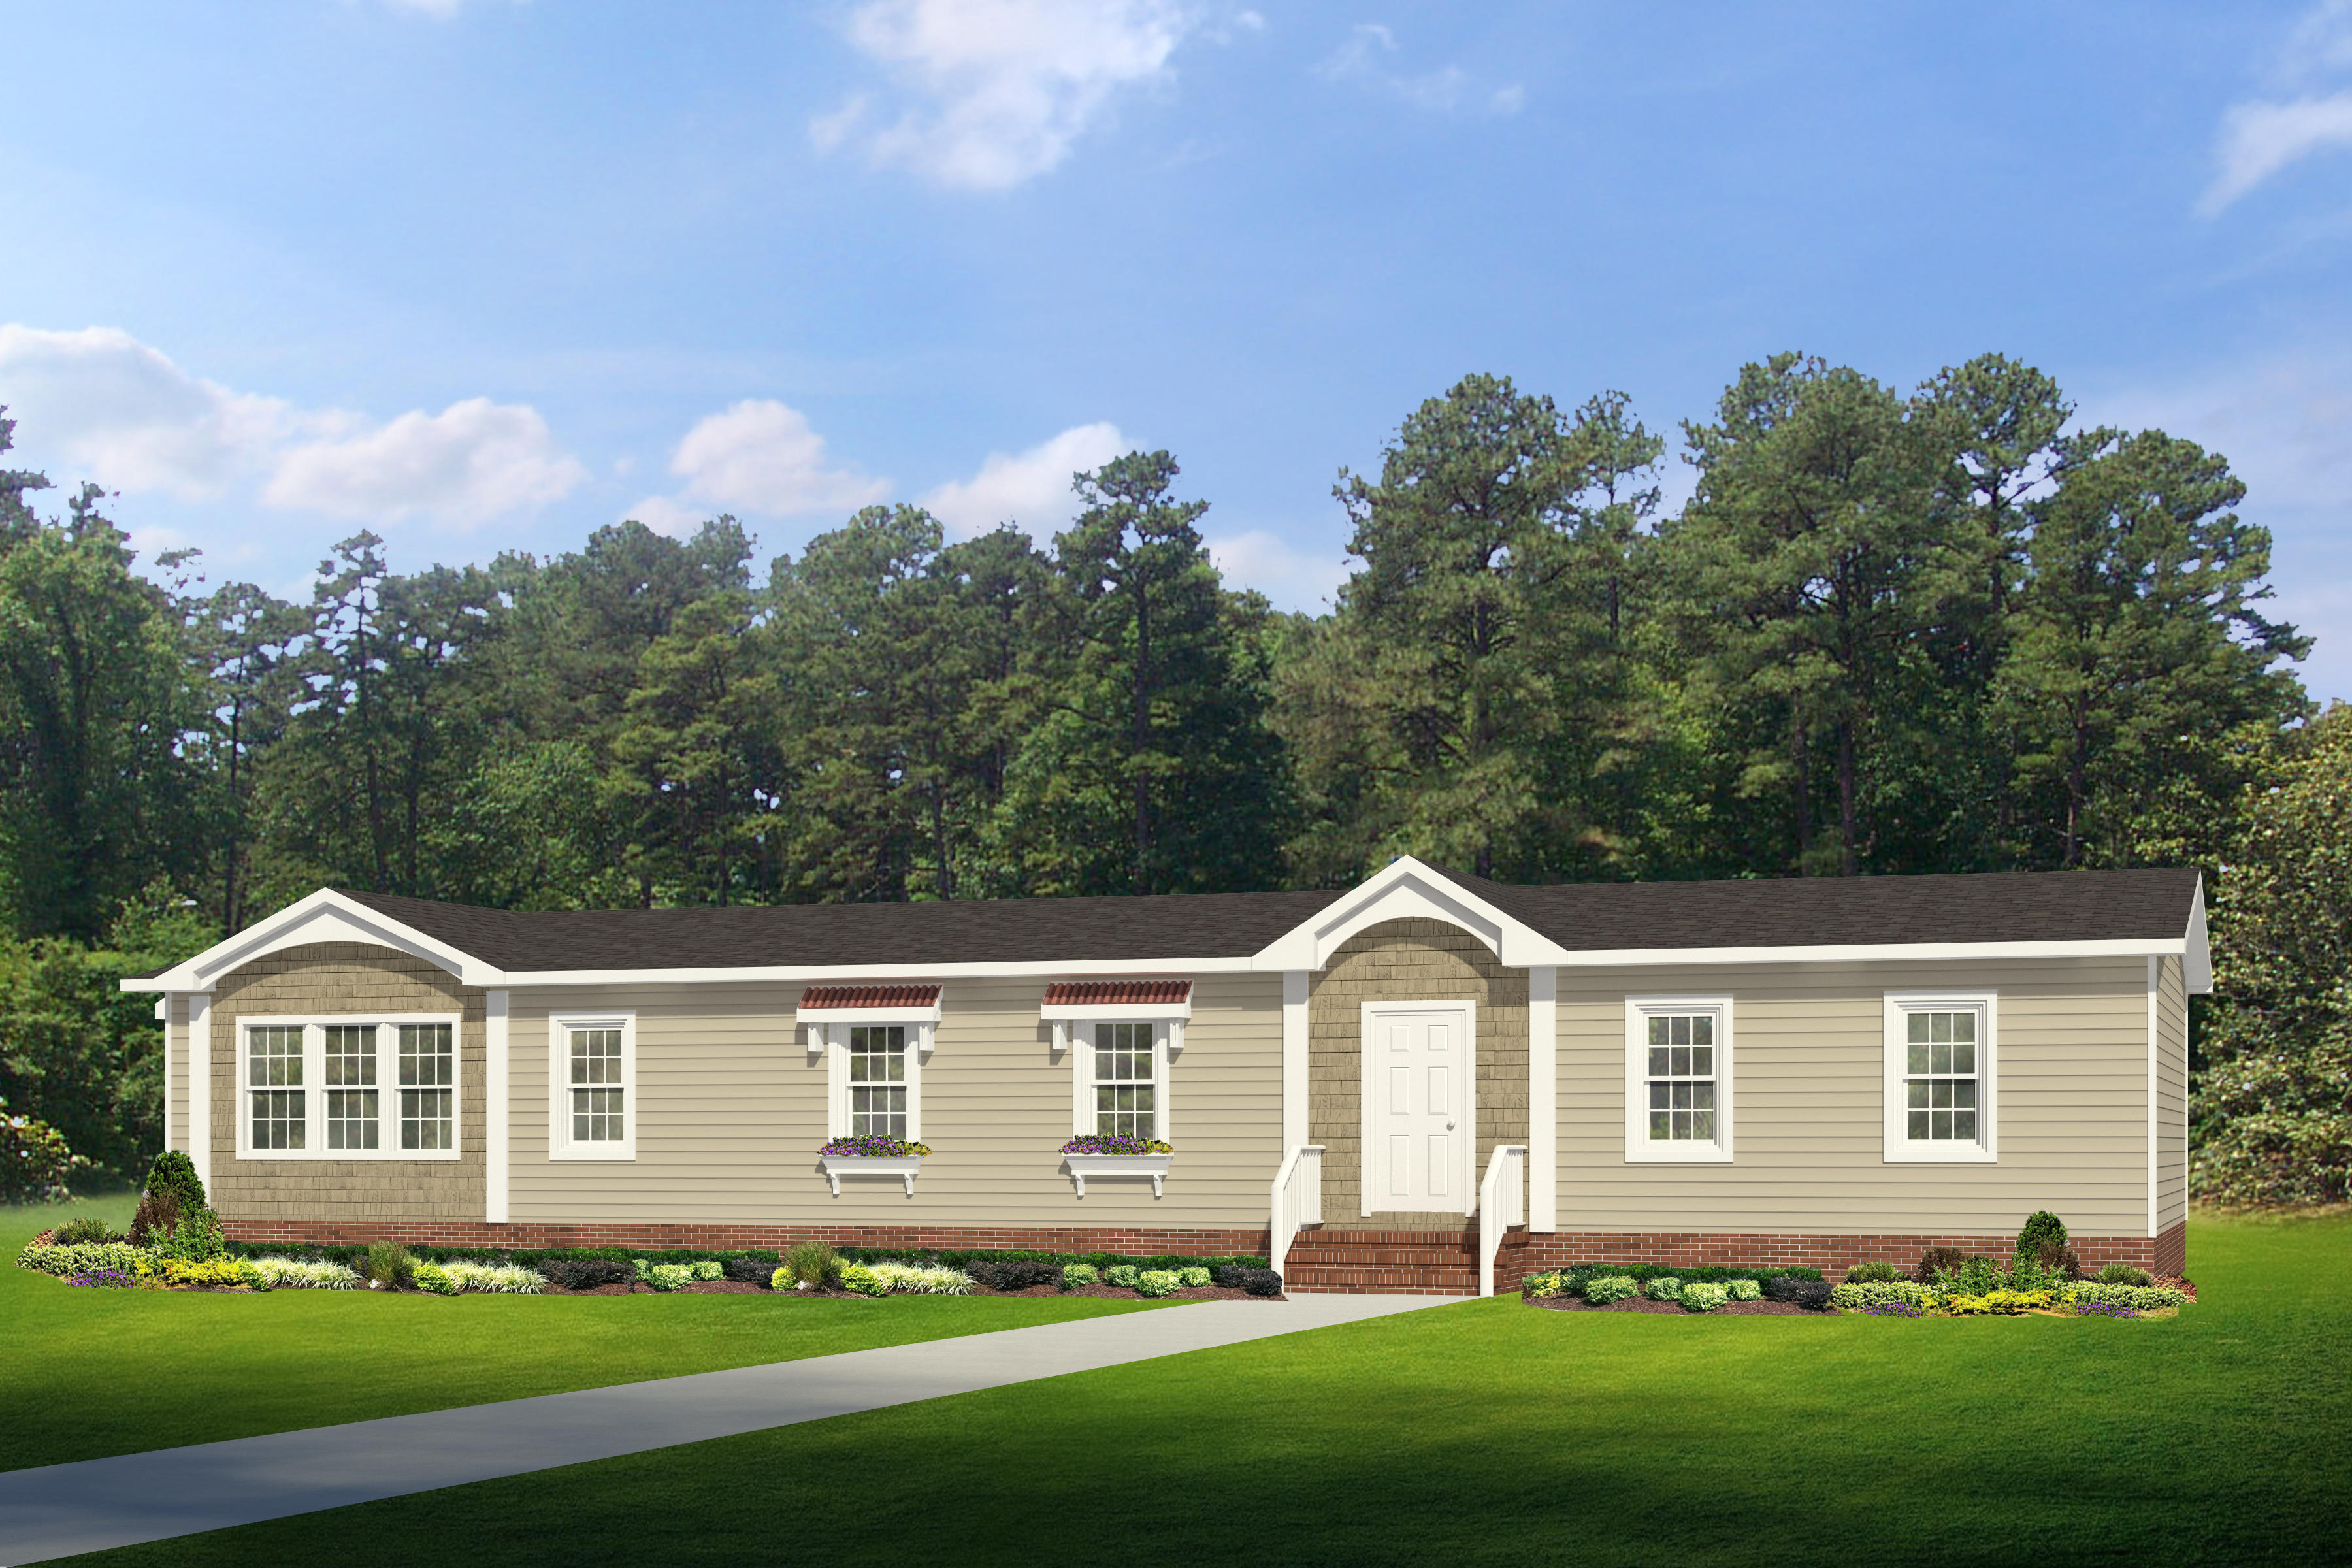 Clayton homes in hollins va 24019 for Clayton house